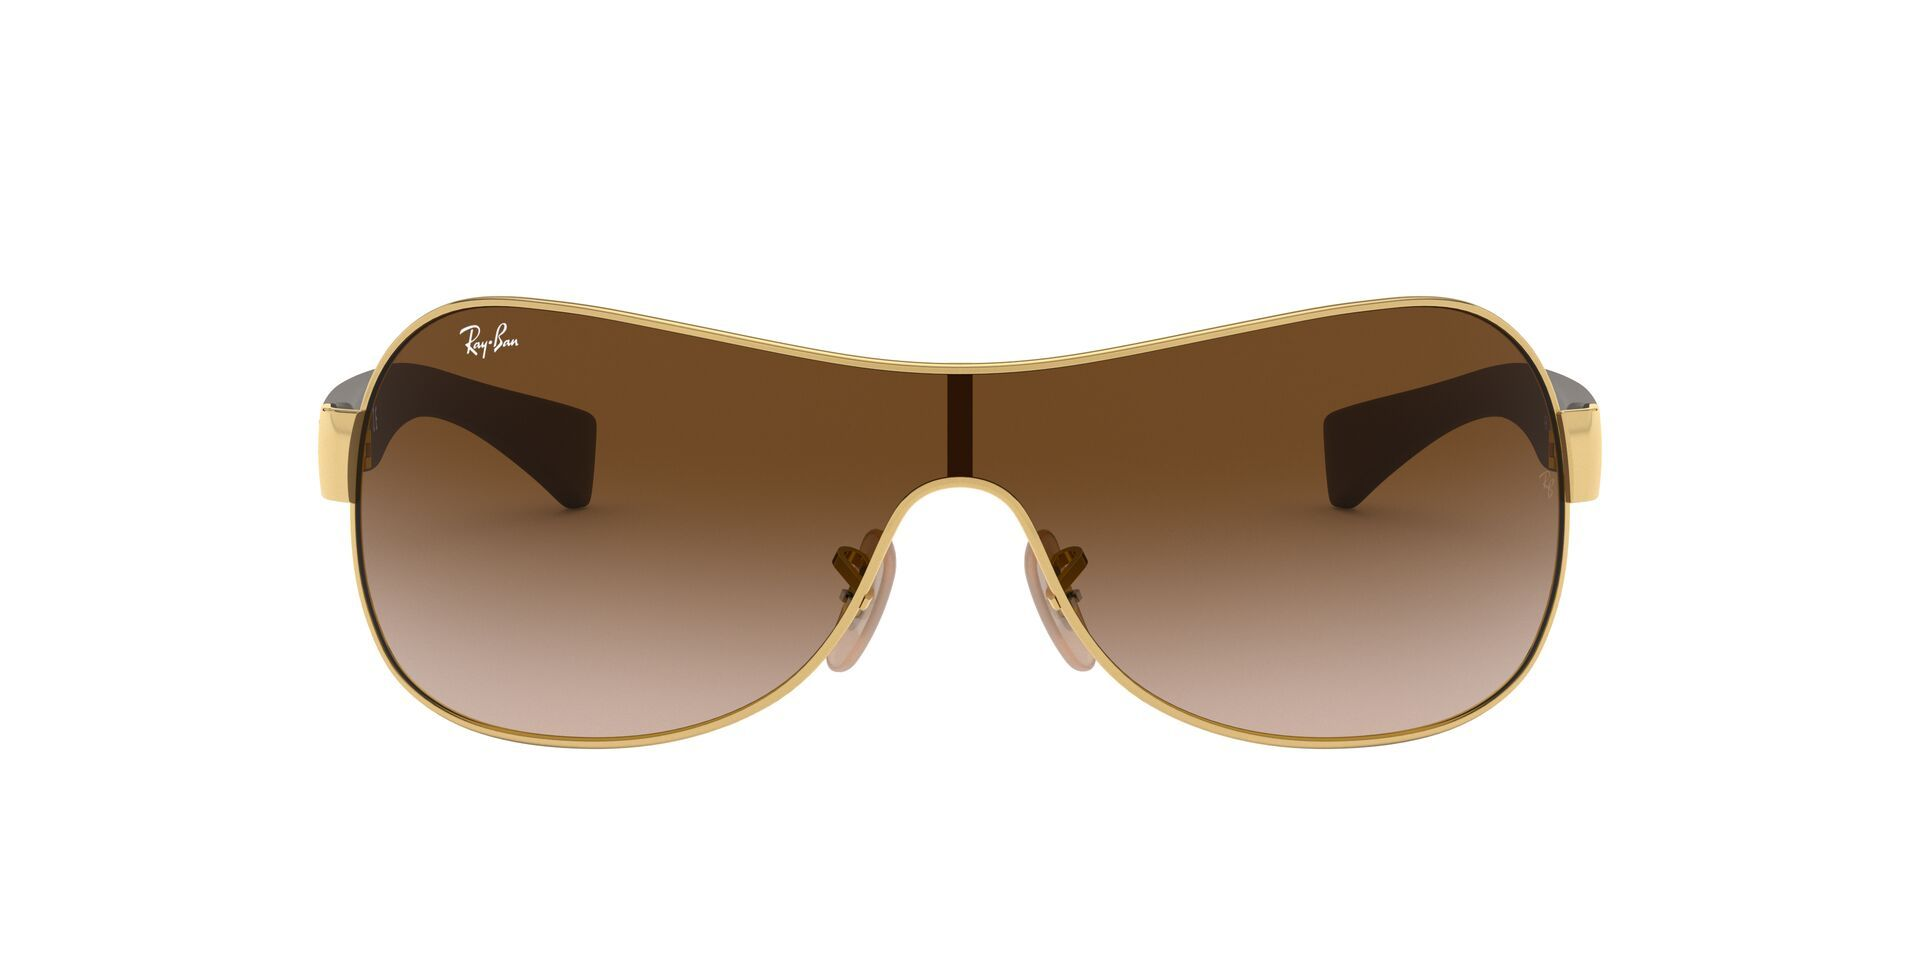 Ray Ban - RB3471 Gold Shield Unisex Sunglasses - 132mm-Sunglasses-Designer Eyes